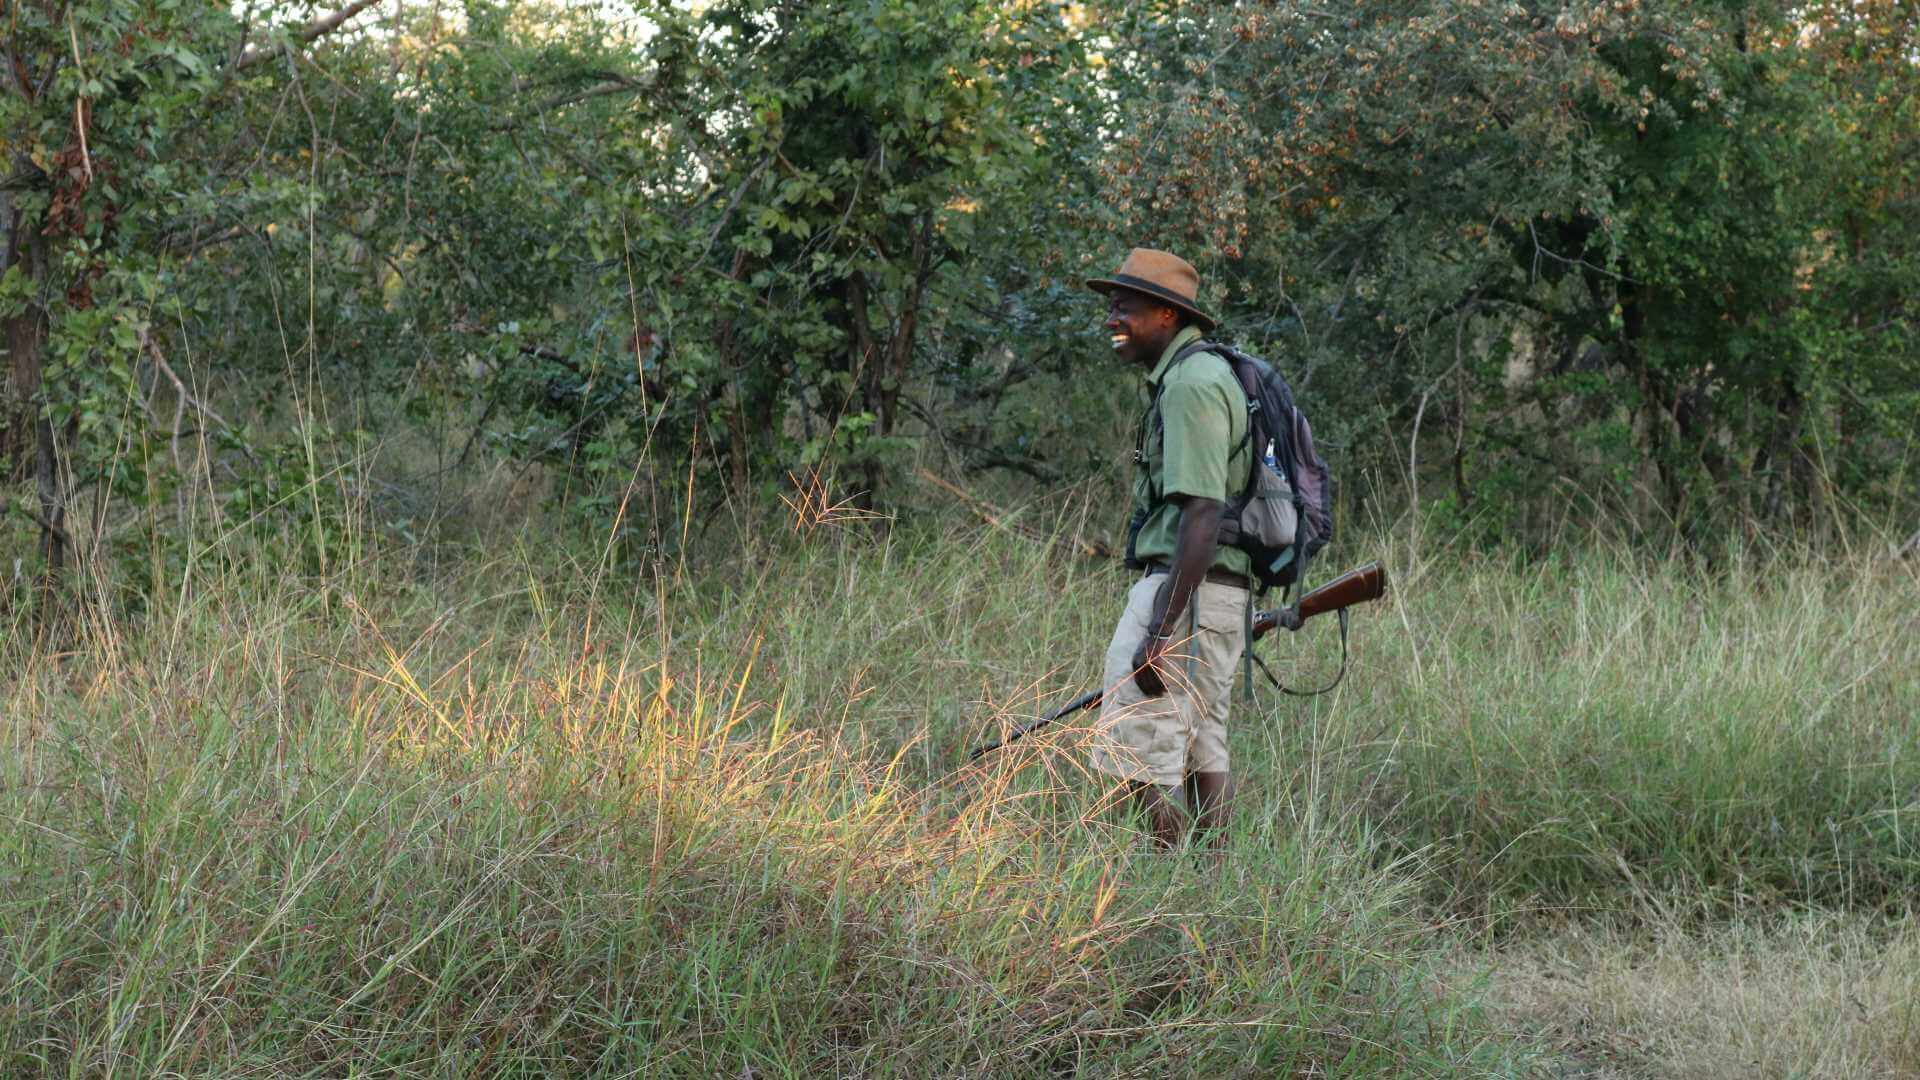 Safari guide from Imvelo, Hwange National Park, Zimbabwe